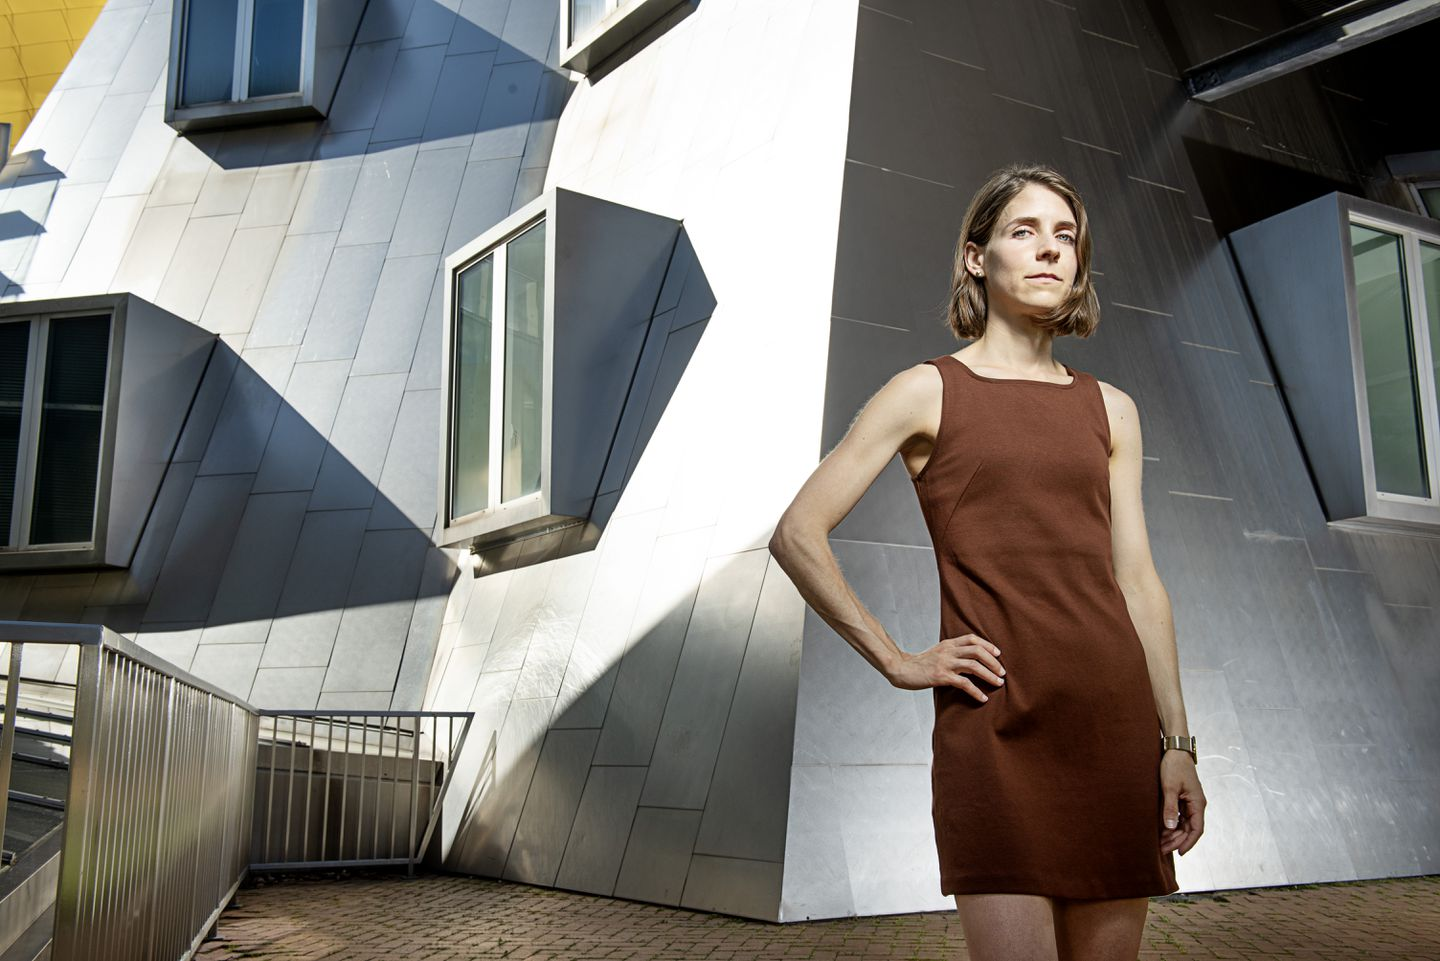 Mathematician Lisa Piccirillo at MIT, where she is now an assistant professor.